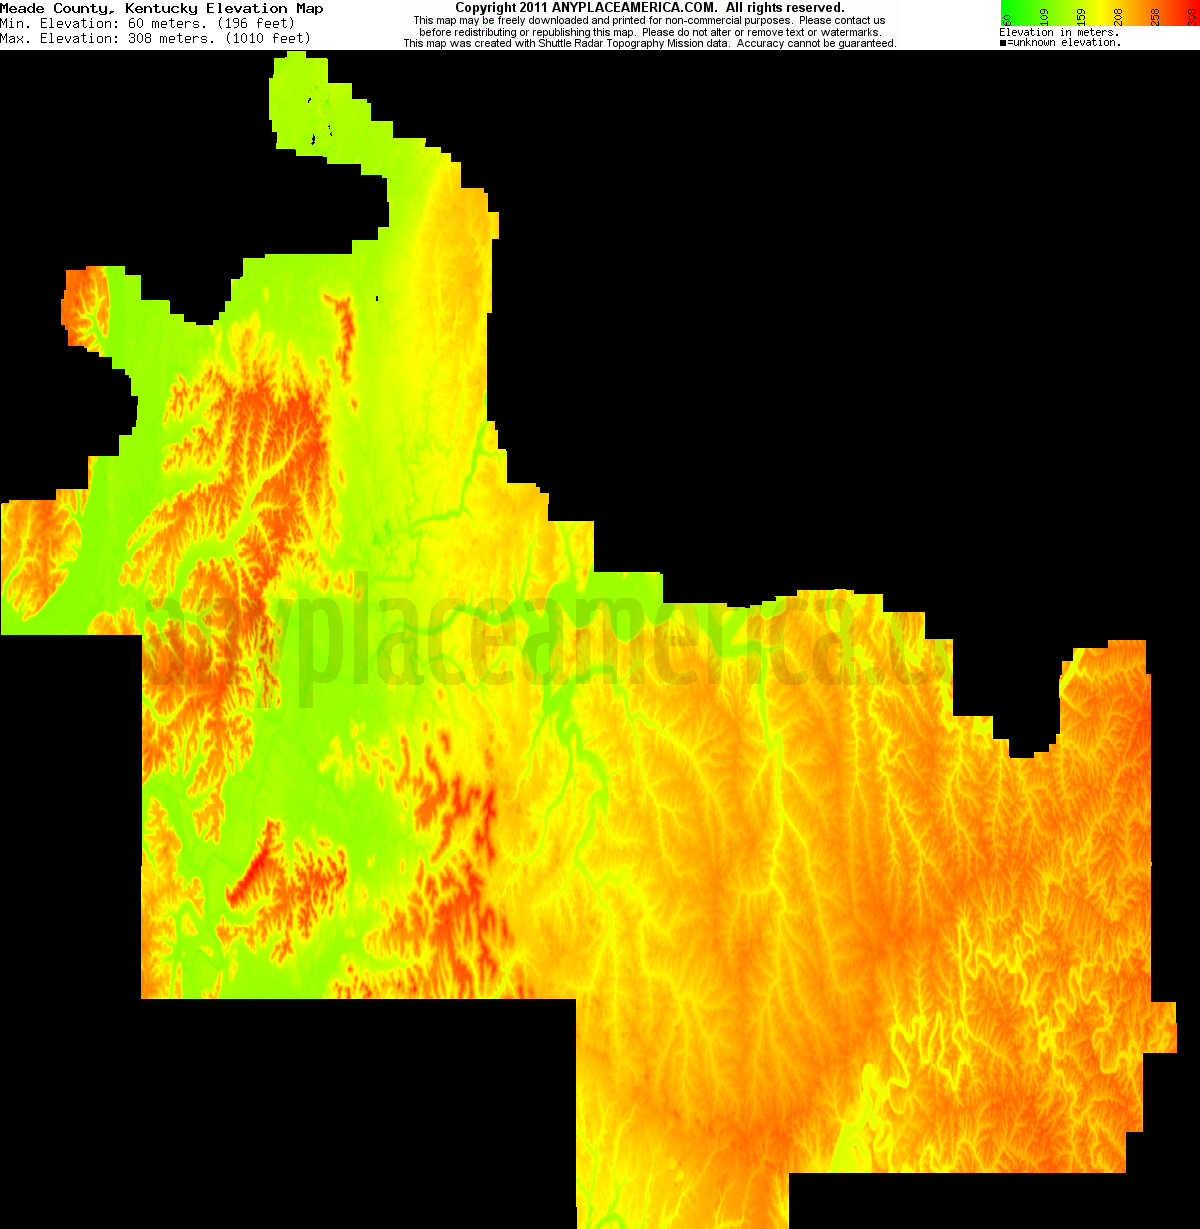 Meade, Kentucky elevation map